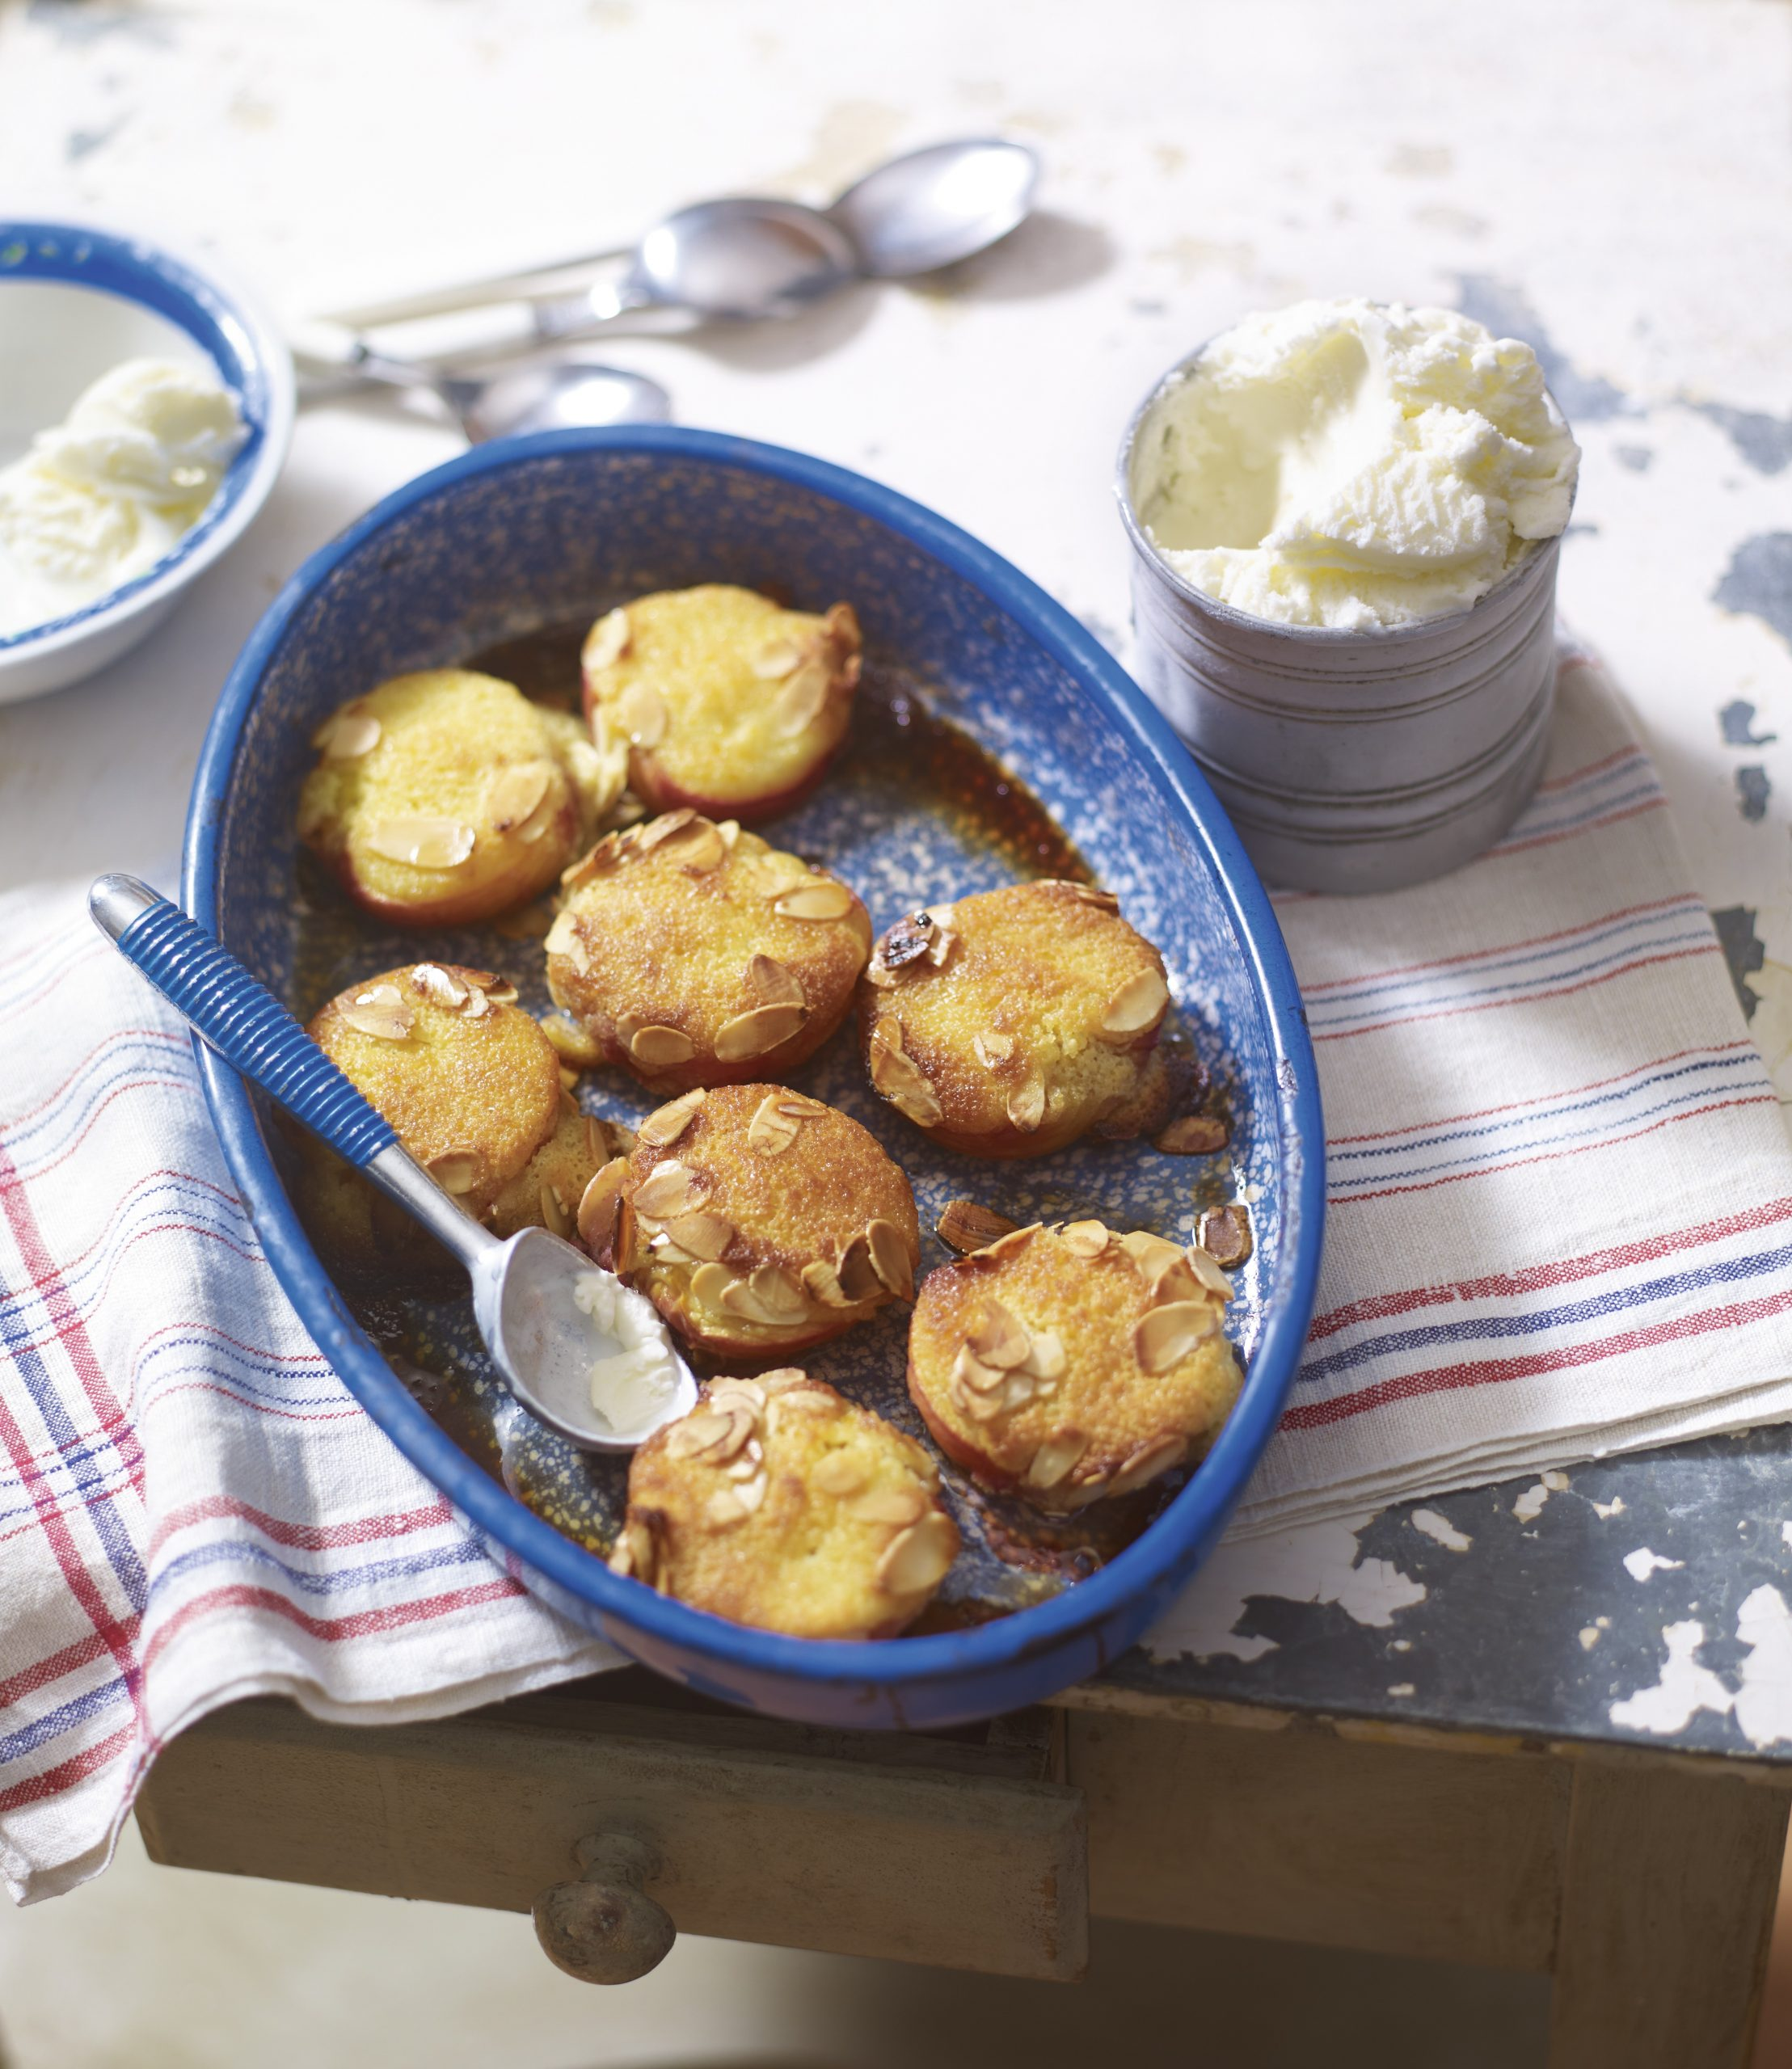 Recipe: Baked peaches with an orange and almond topping